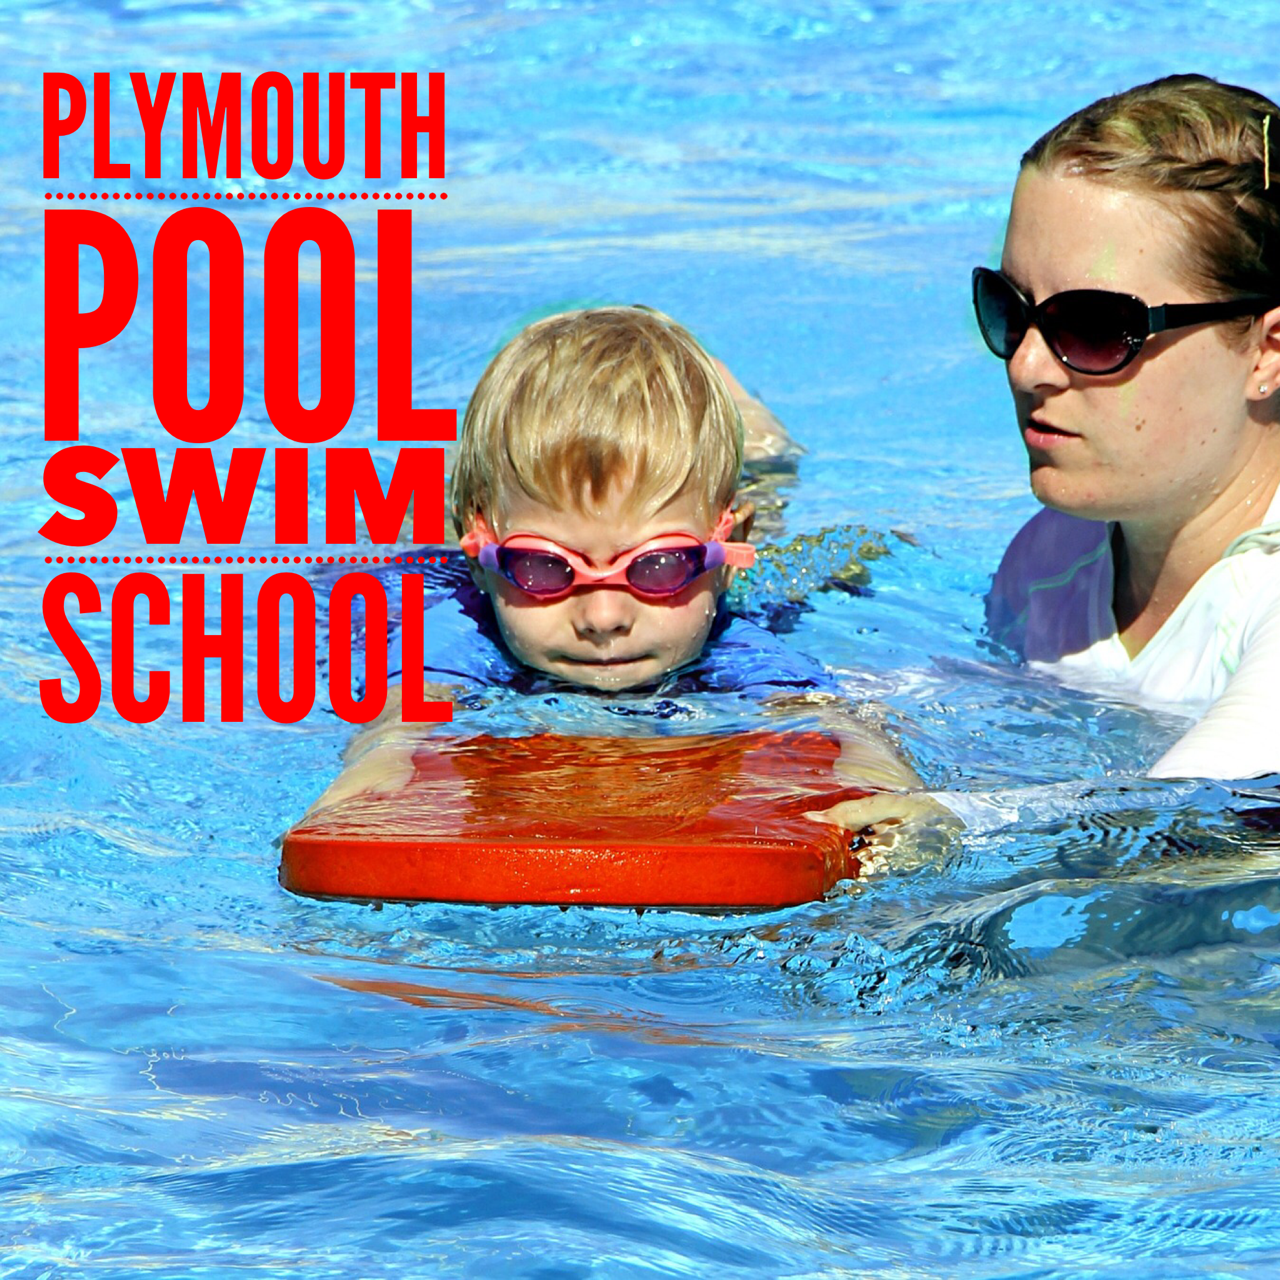 Plymouth Pool Swim Lessons General